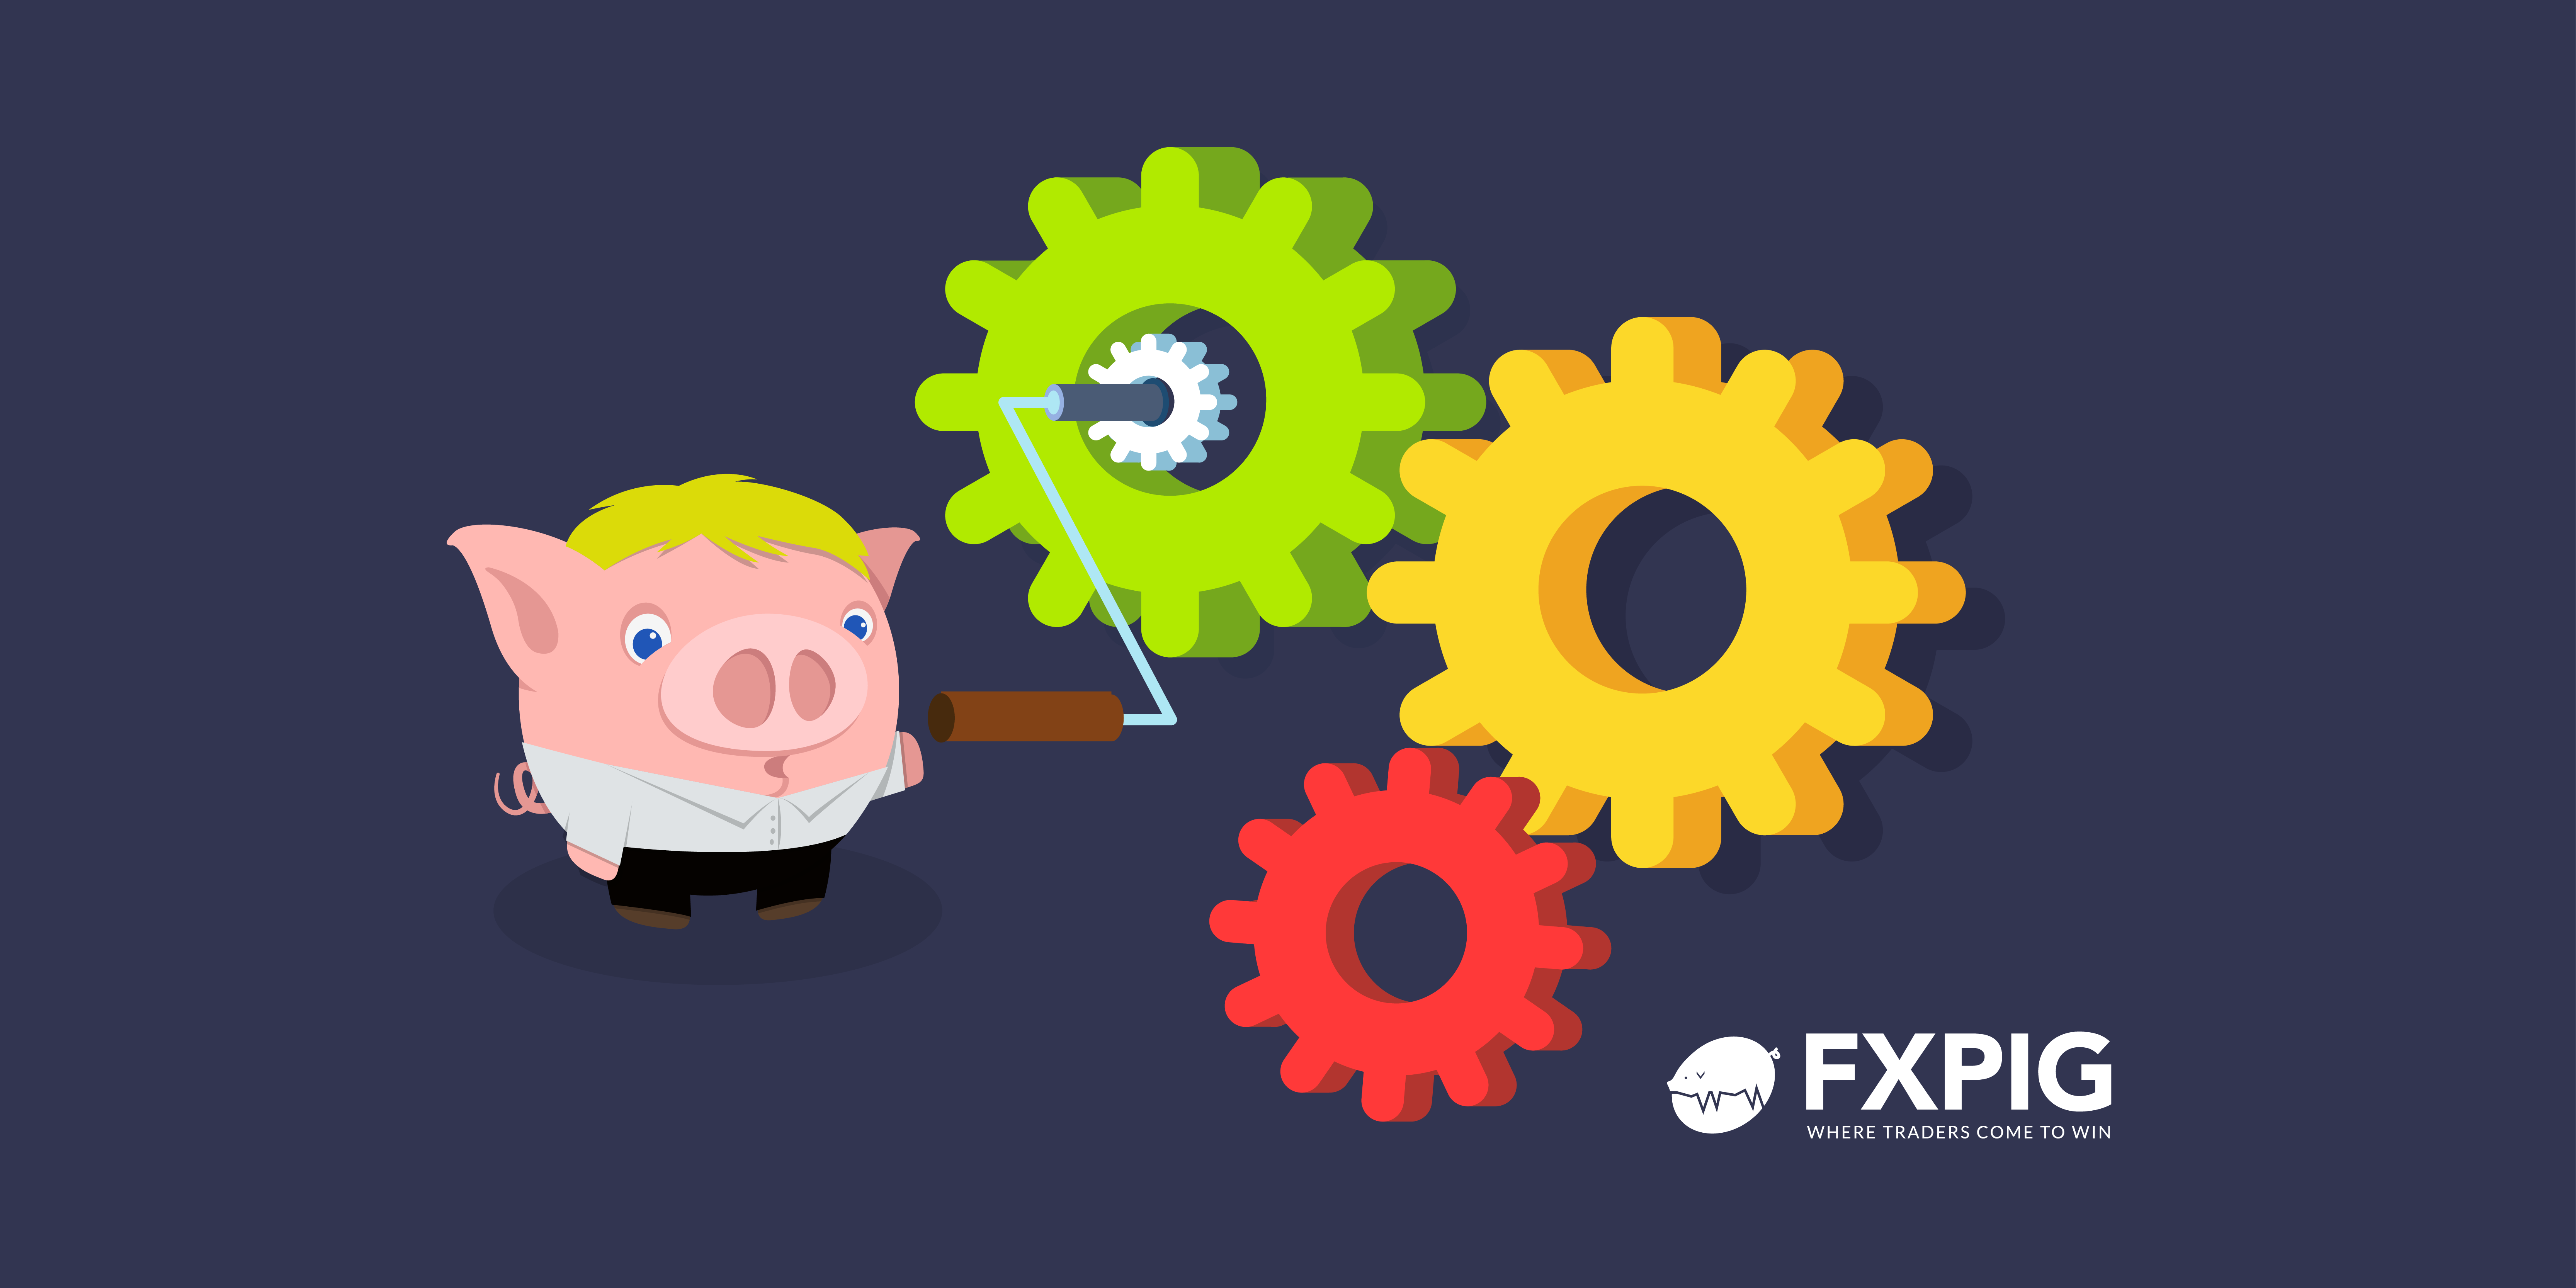 Forex_Trading_Fx_Trader_FXPIG_Week_Ahead_DEC